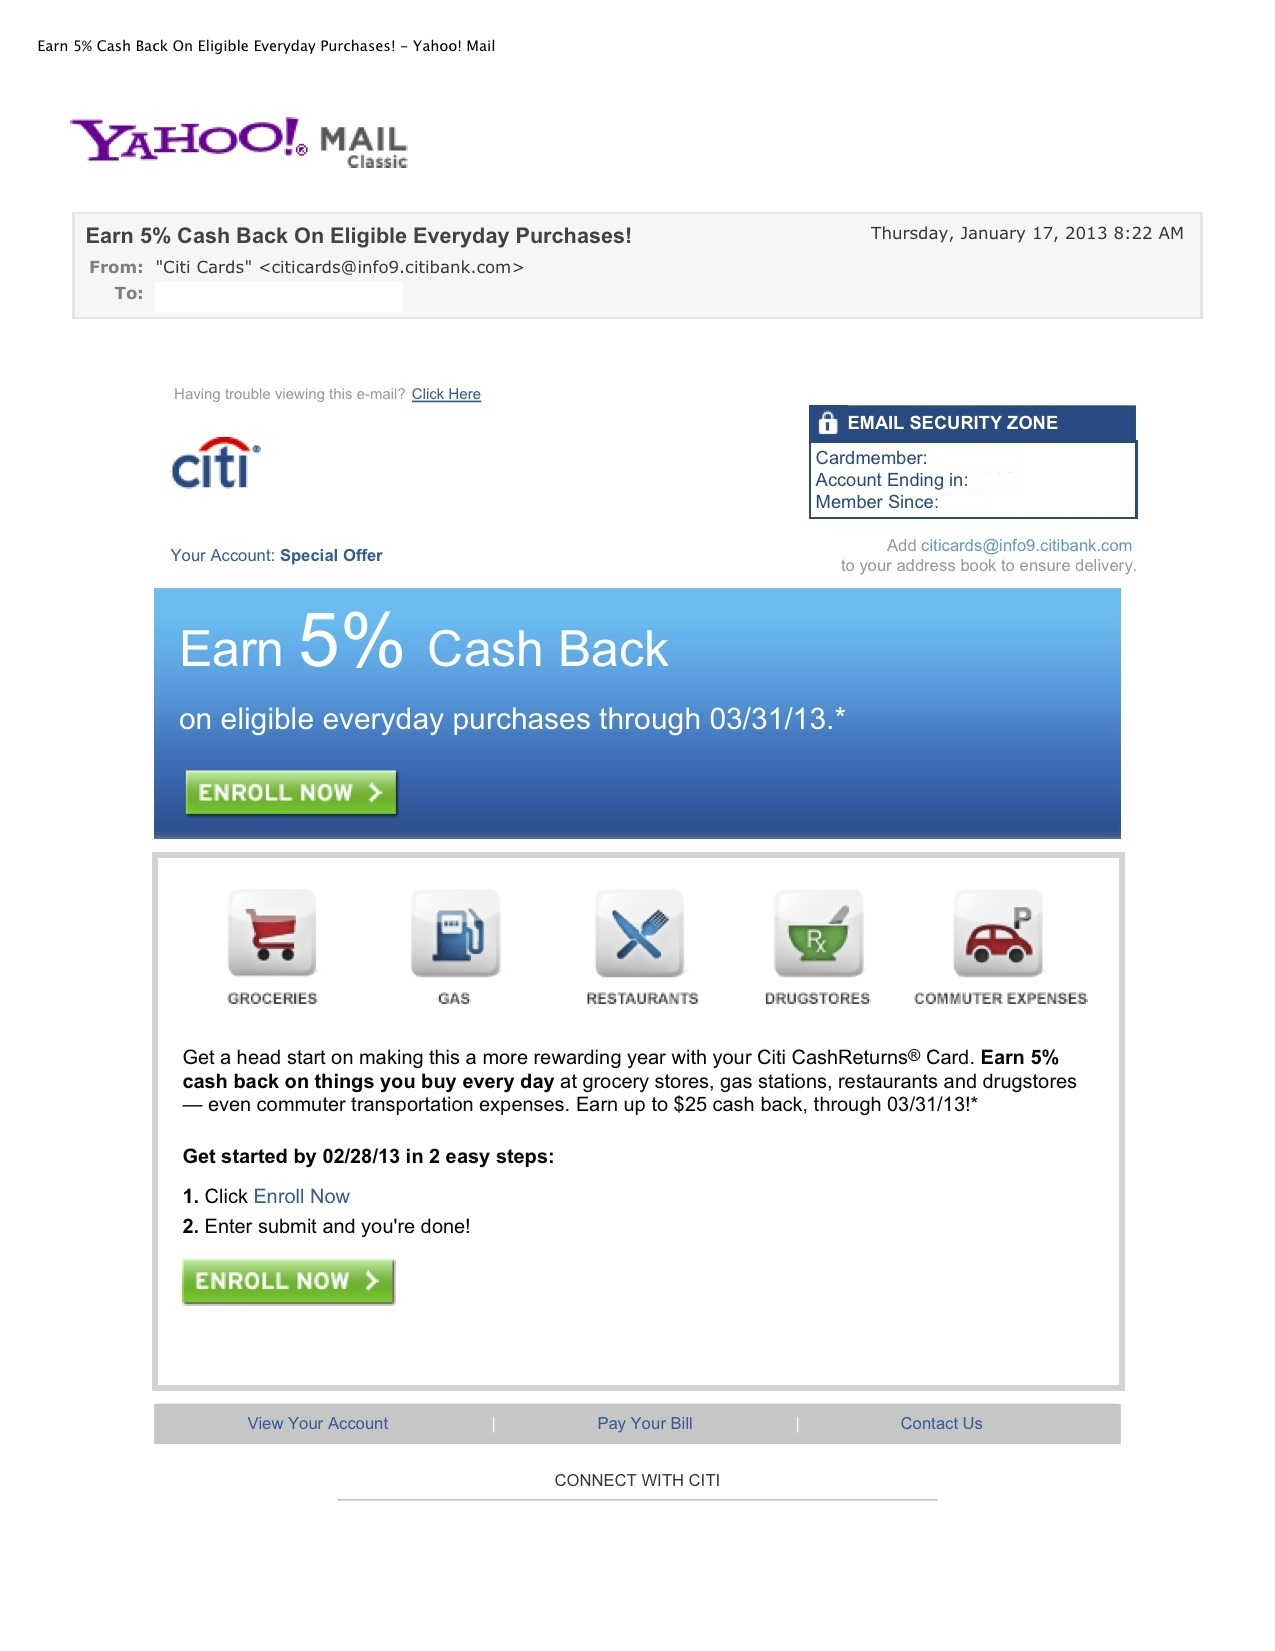 Earn 5% Cash Back On Eligible Everyday Purchases!1 - Yahoo! Mail.jpg